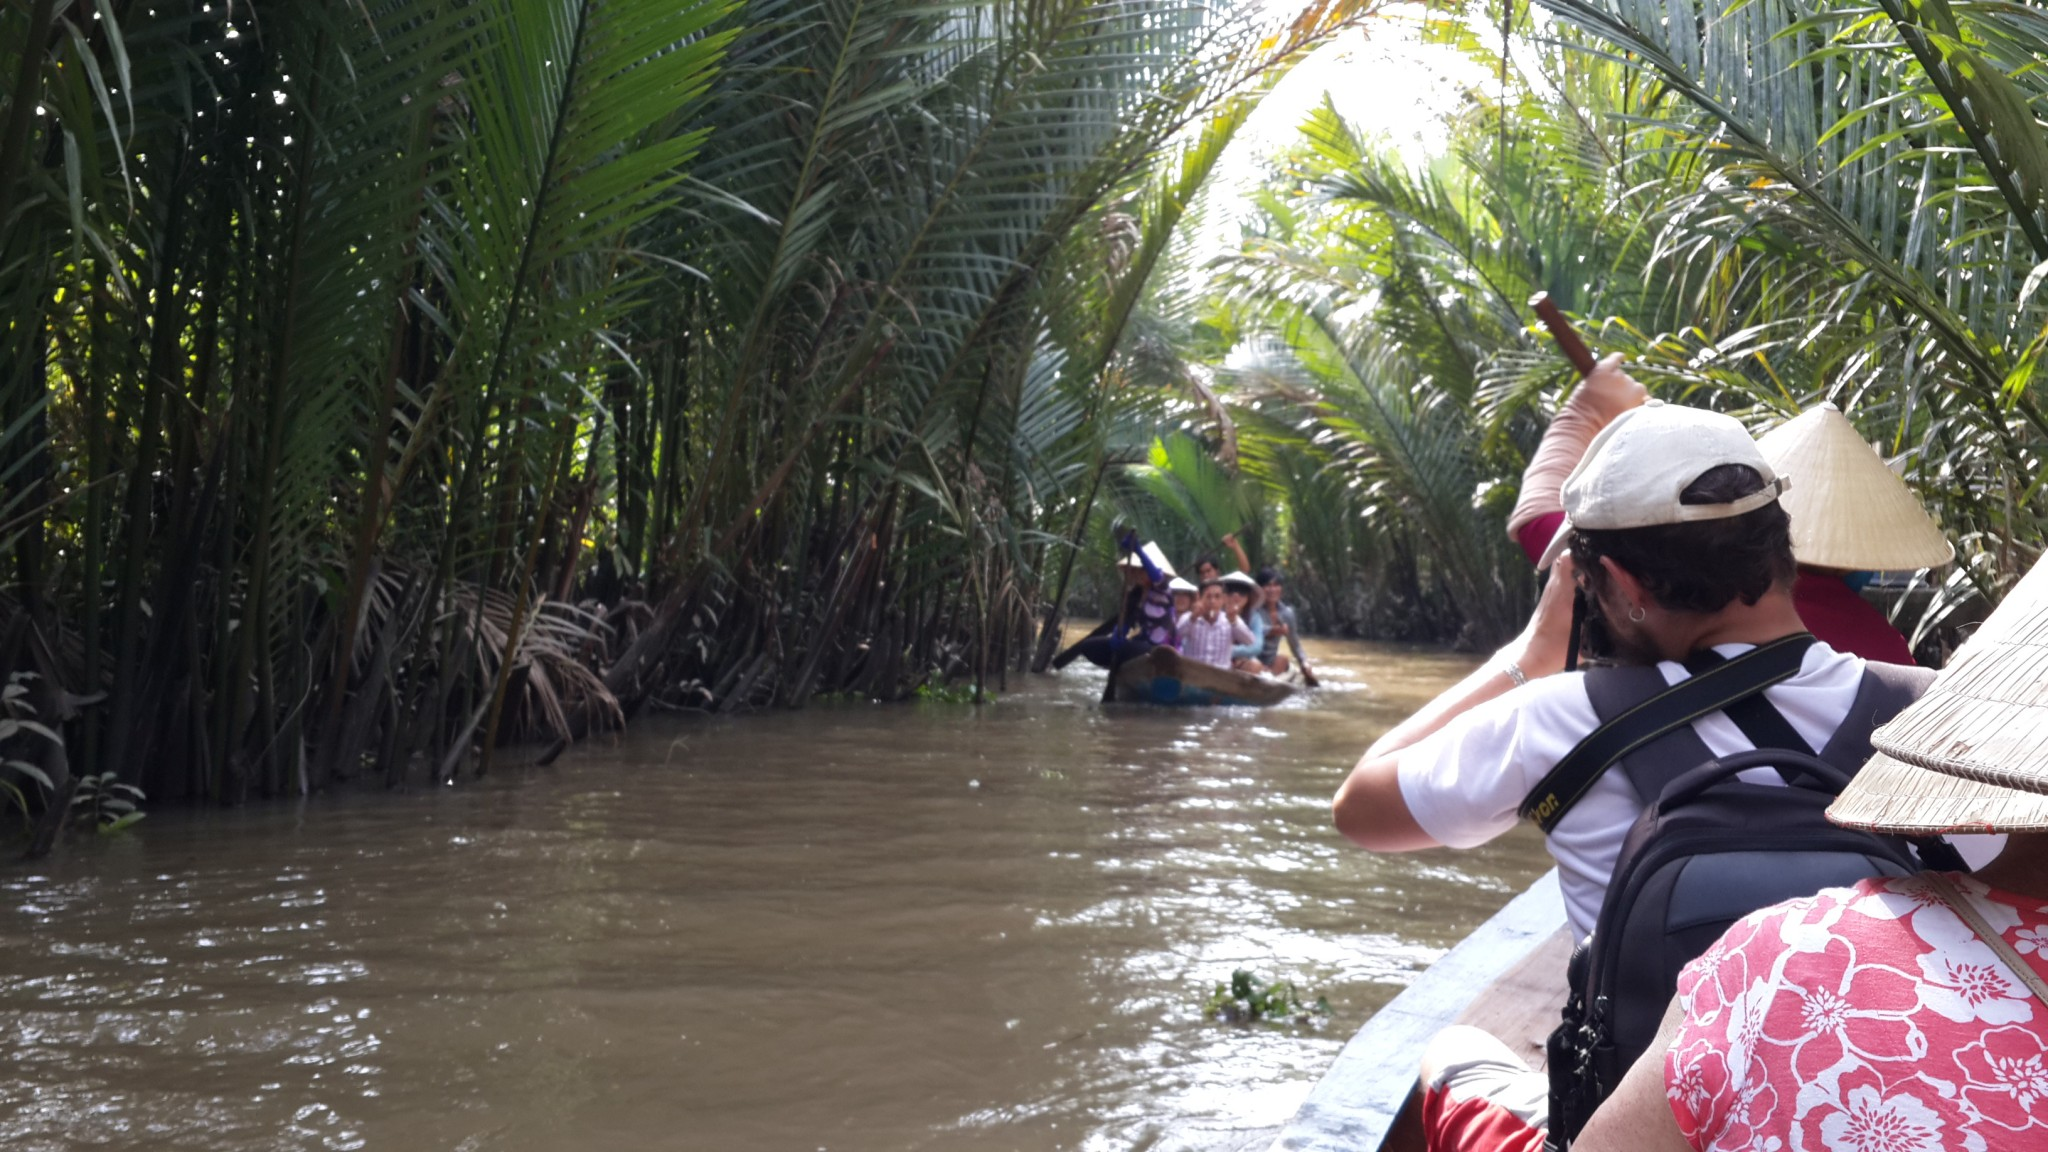 A visit to one of the many islands along the Mekong courtesy of a local paddle powered river taxi